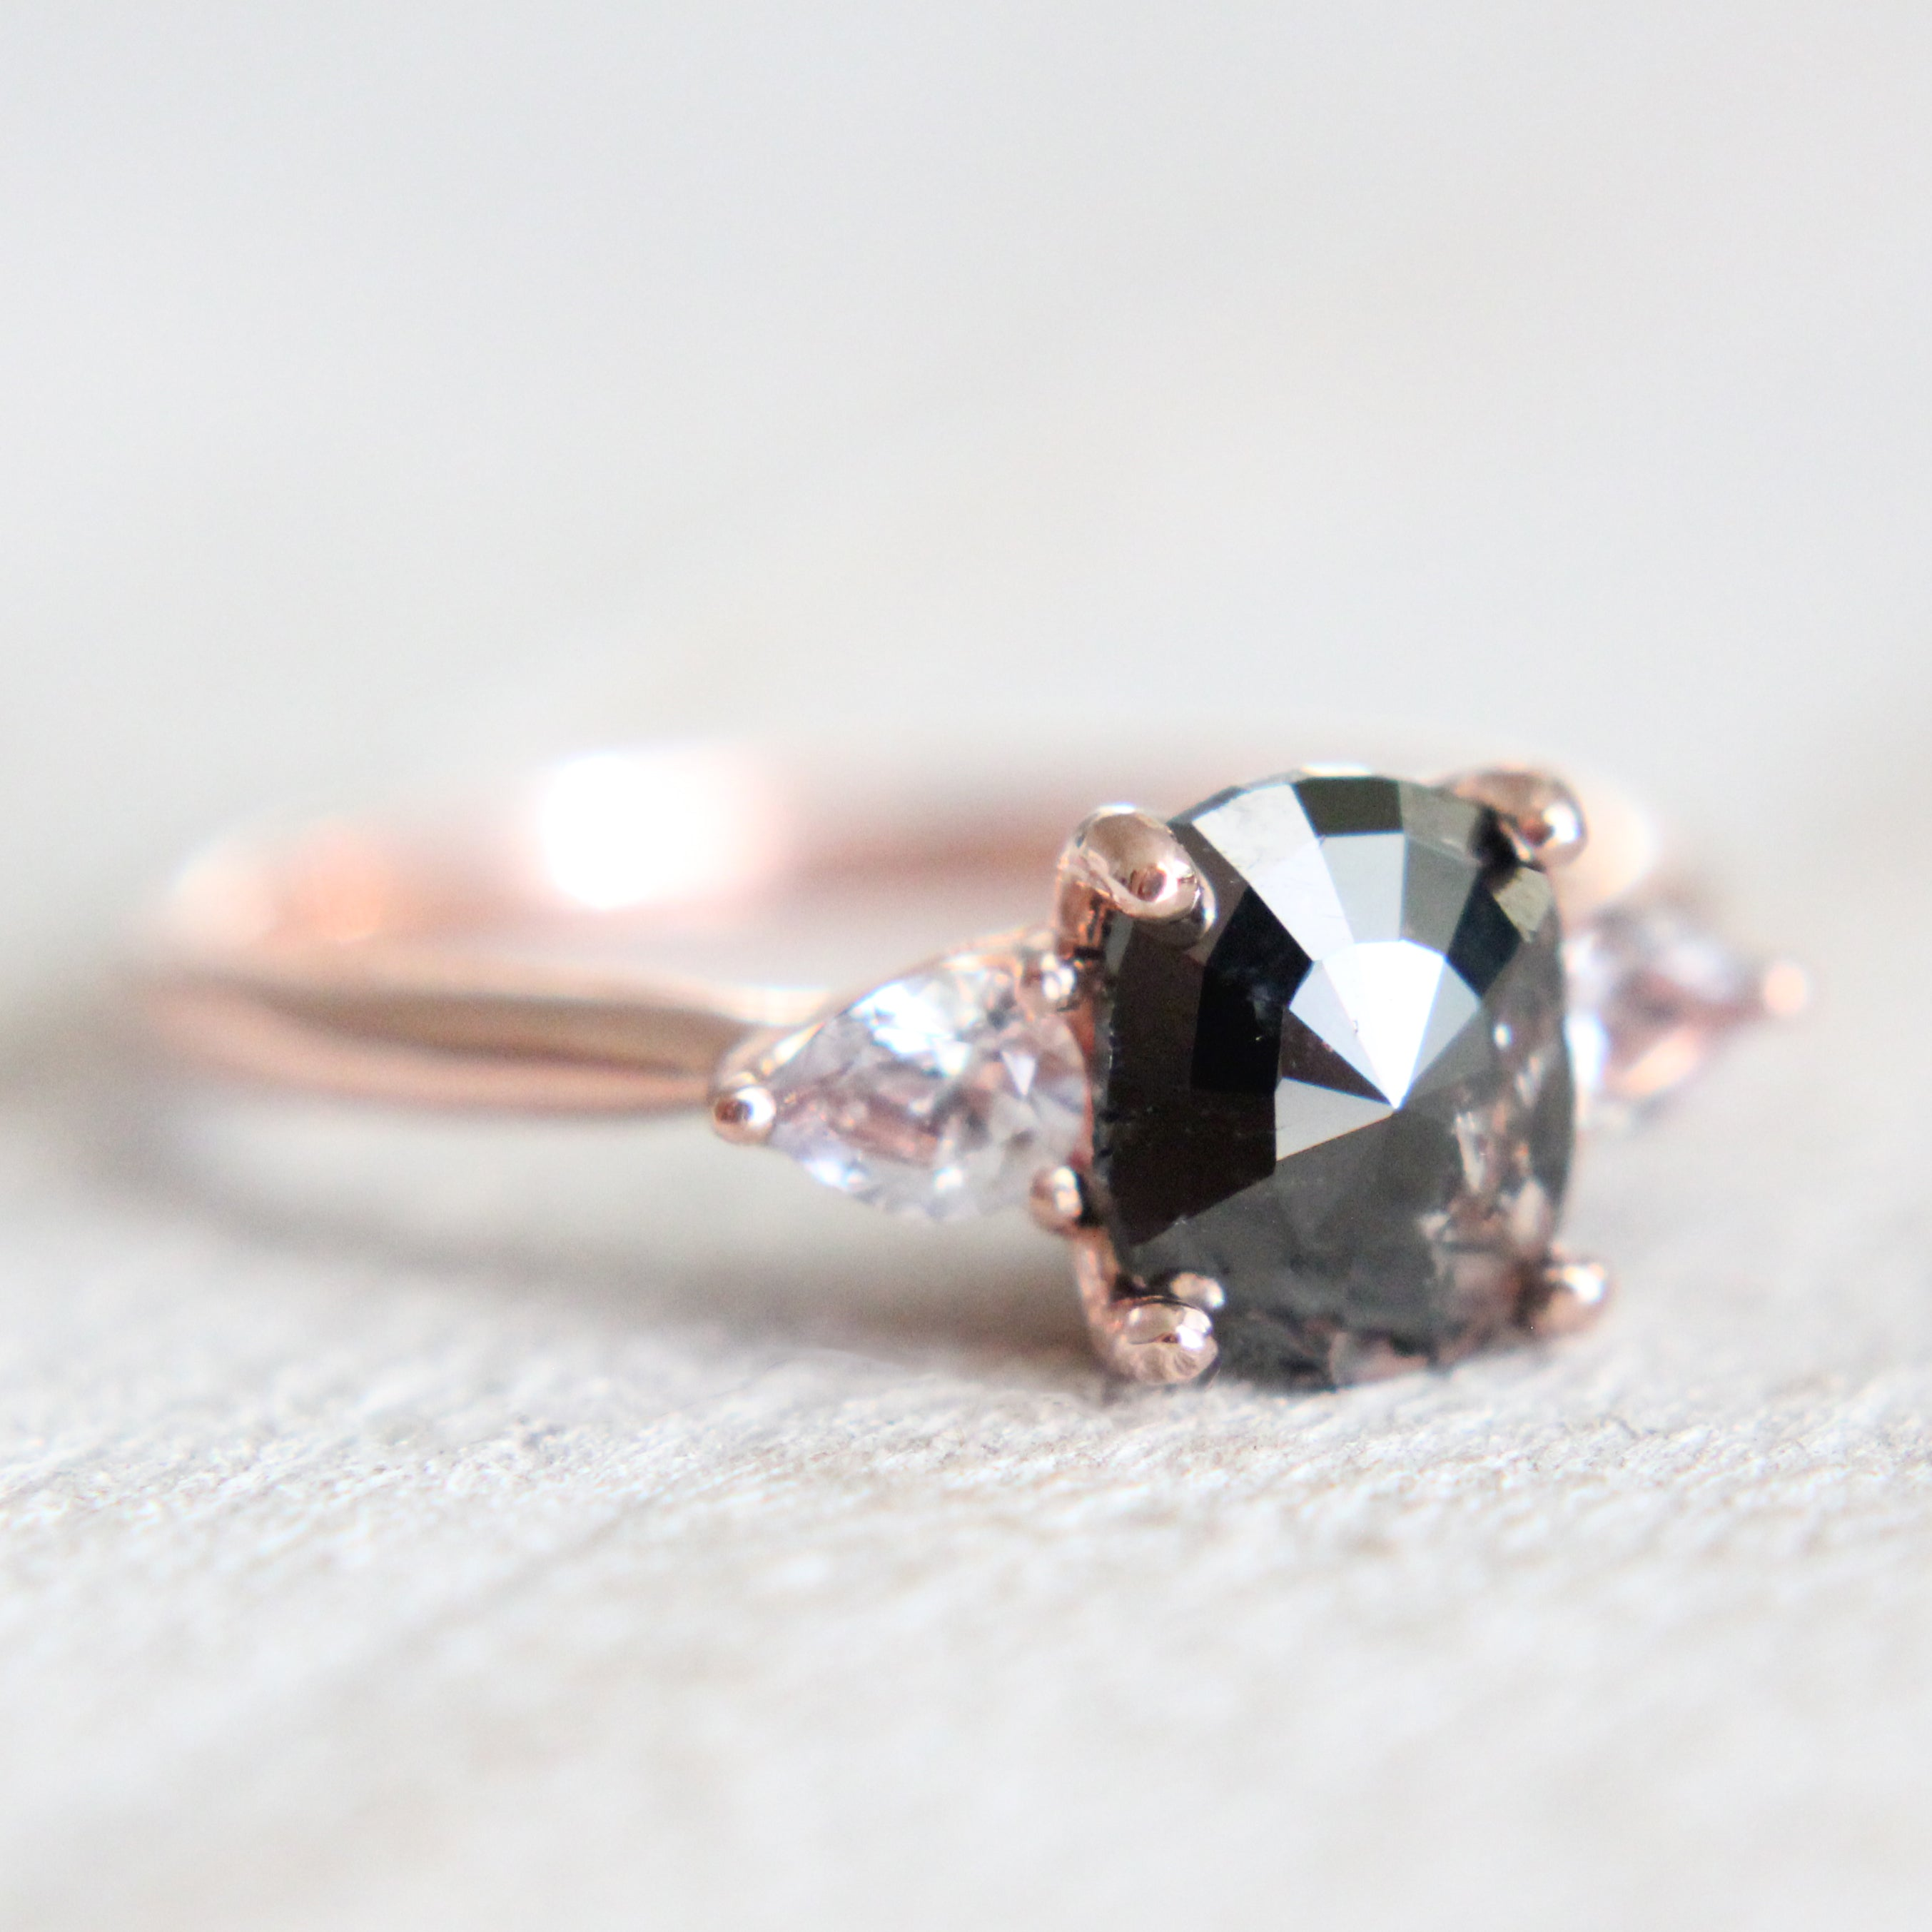 Oleander setting - Midwinter Co. Alternative Bridal Rings and Modern Fine Jewelry